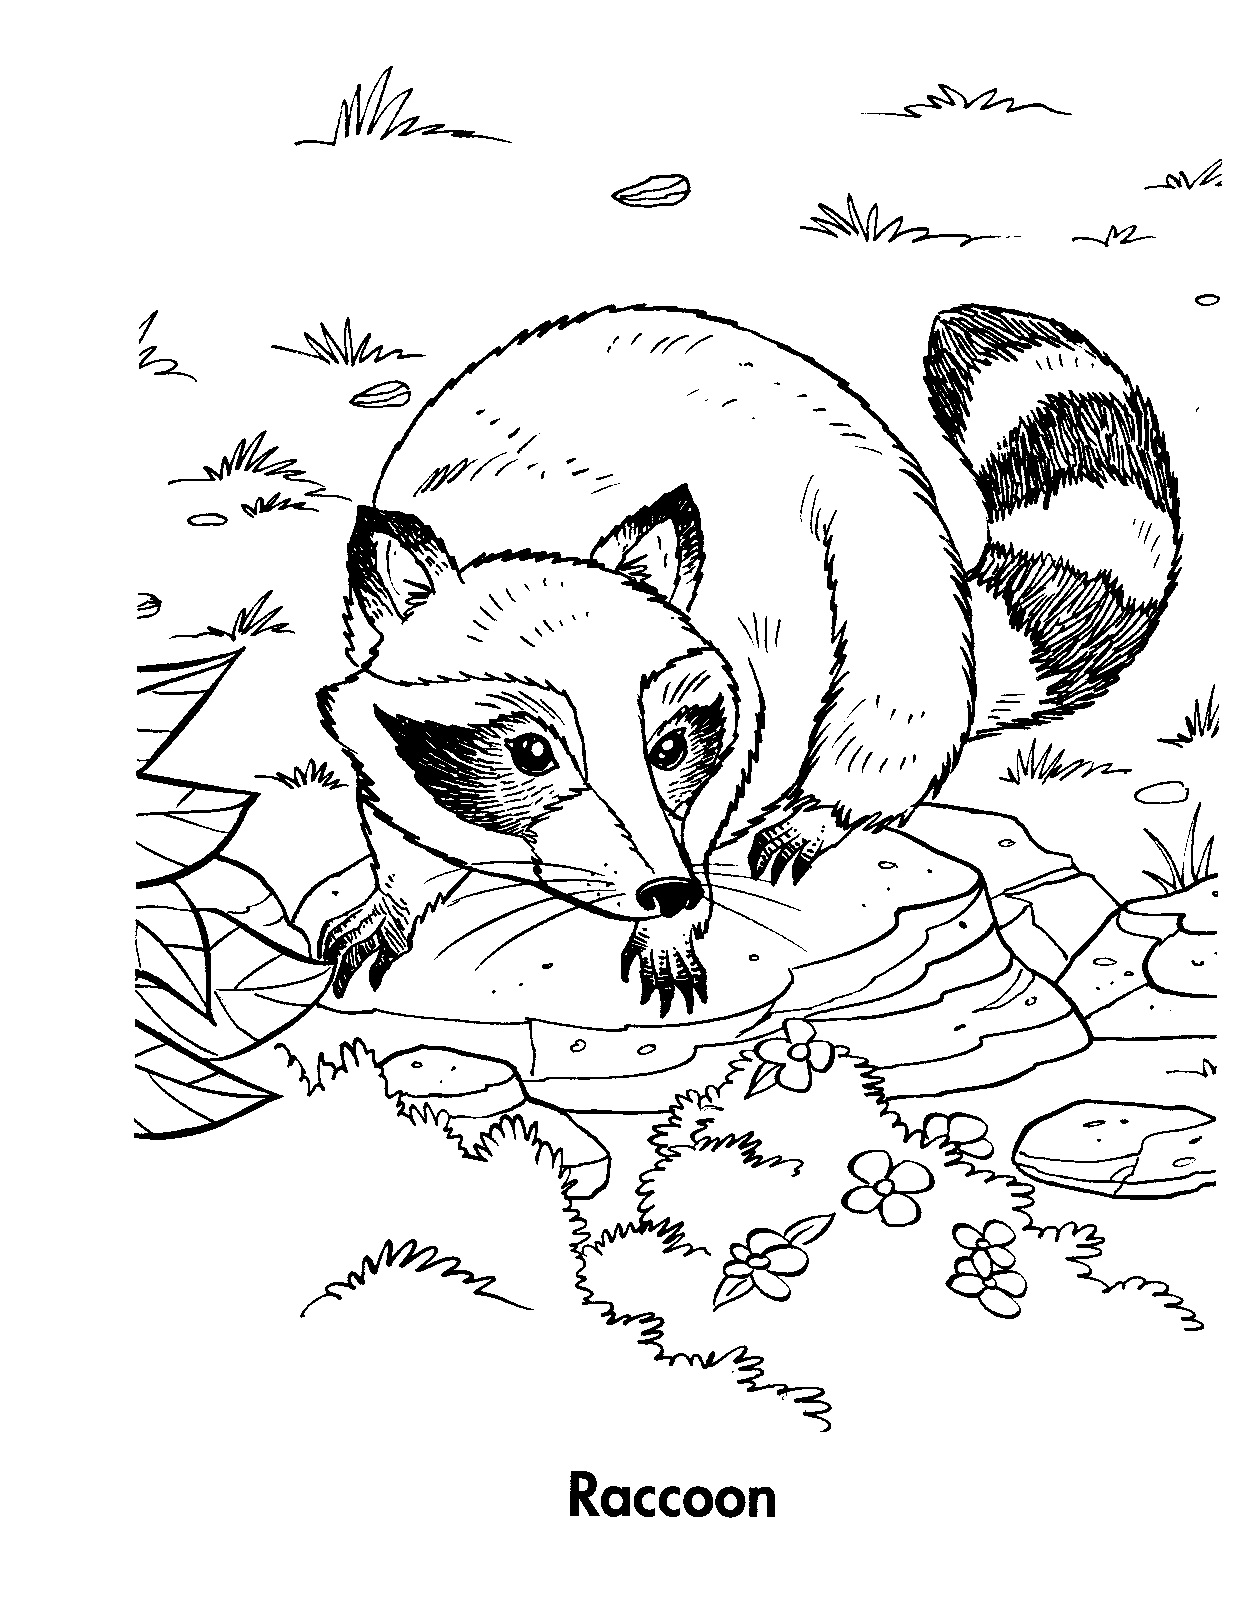 raccoon coloring free printable raccoon coloring pages for kids raccoon coloring